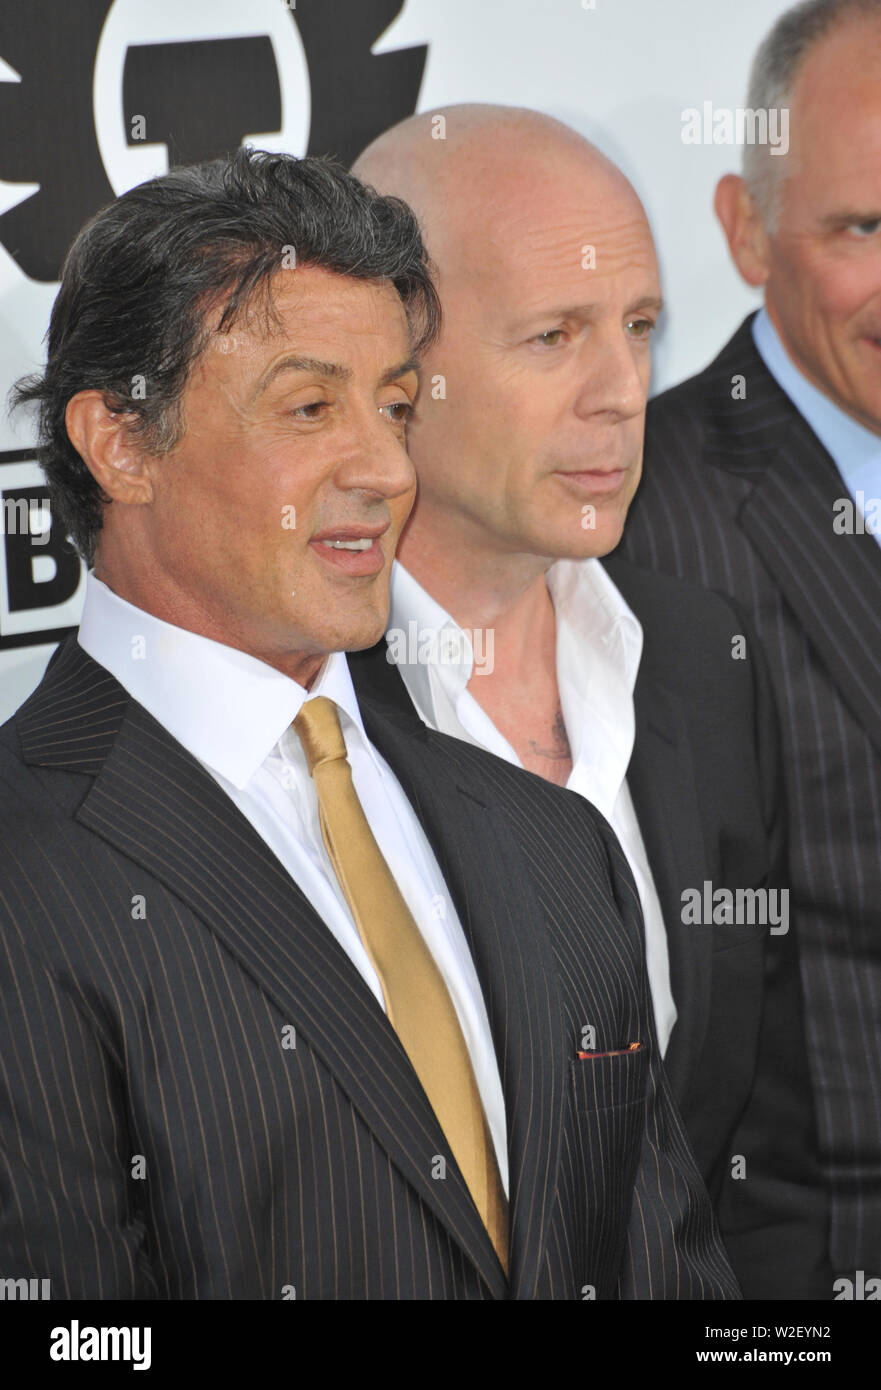 LOS ANGELES, CA. August 03, 2010: Sylvester Stallone (left) & Bruce Willis at the world premiere of their new movie 'The Expendables' at Grauman's Chinese Theatre, Hollywood. © 2010 Paul Smith / Featureflash - Stock Image